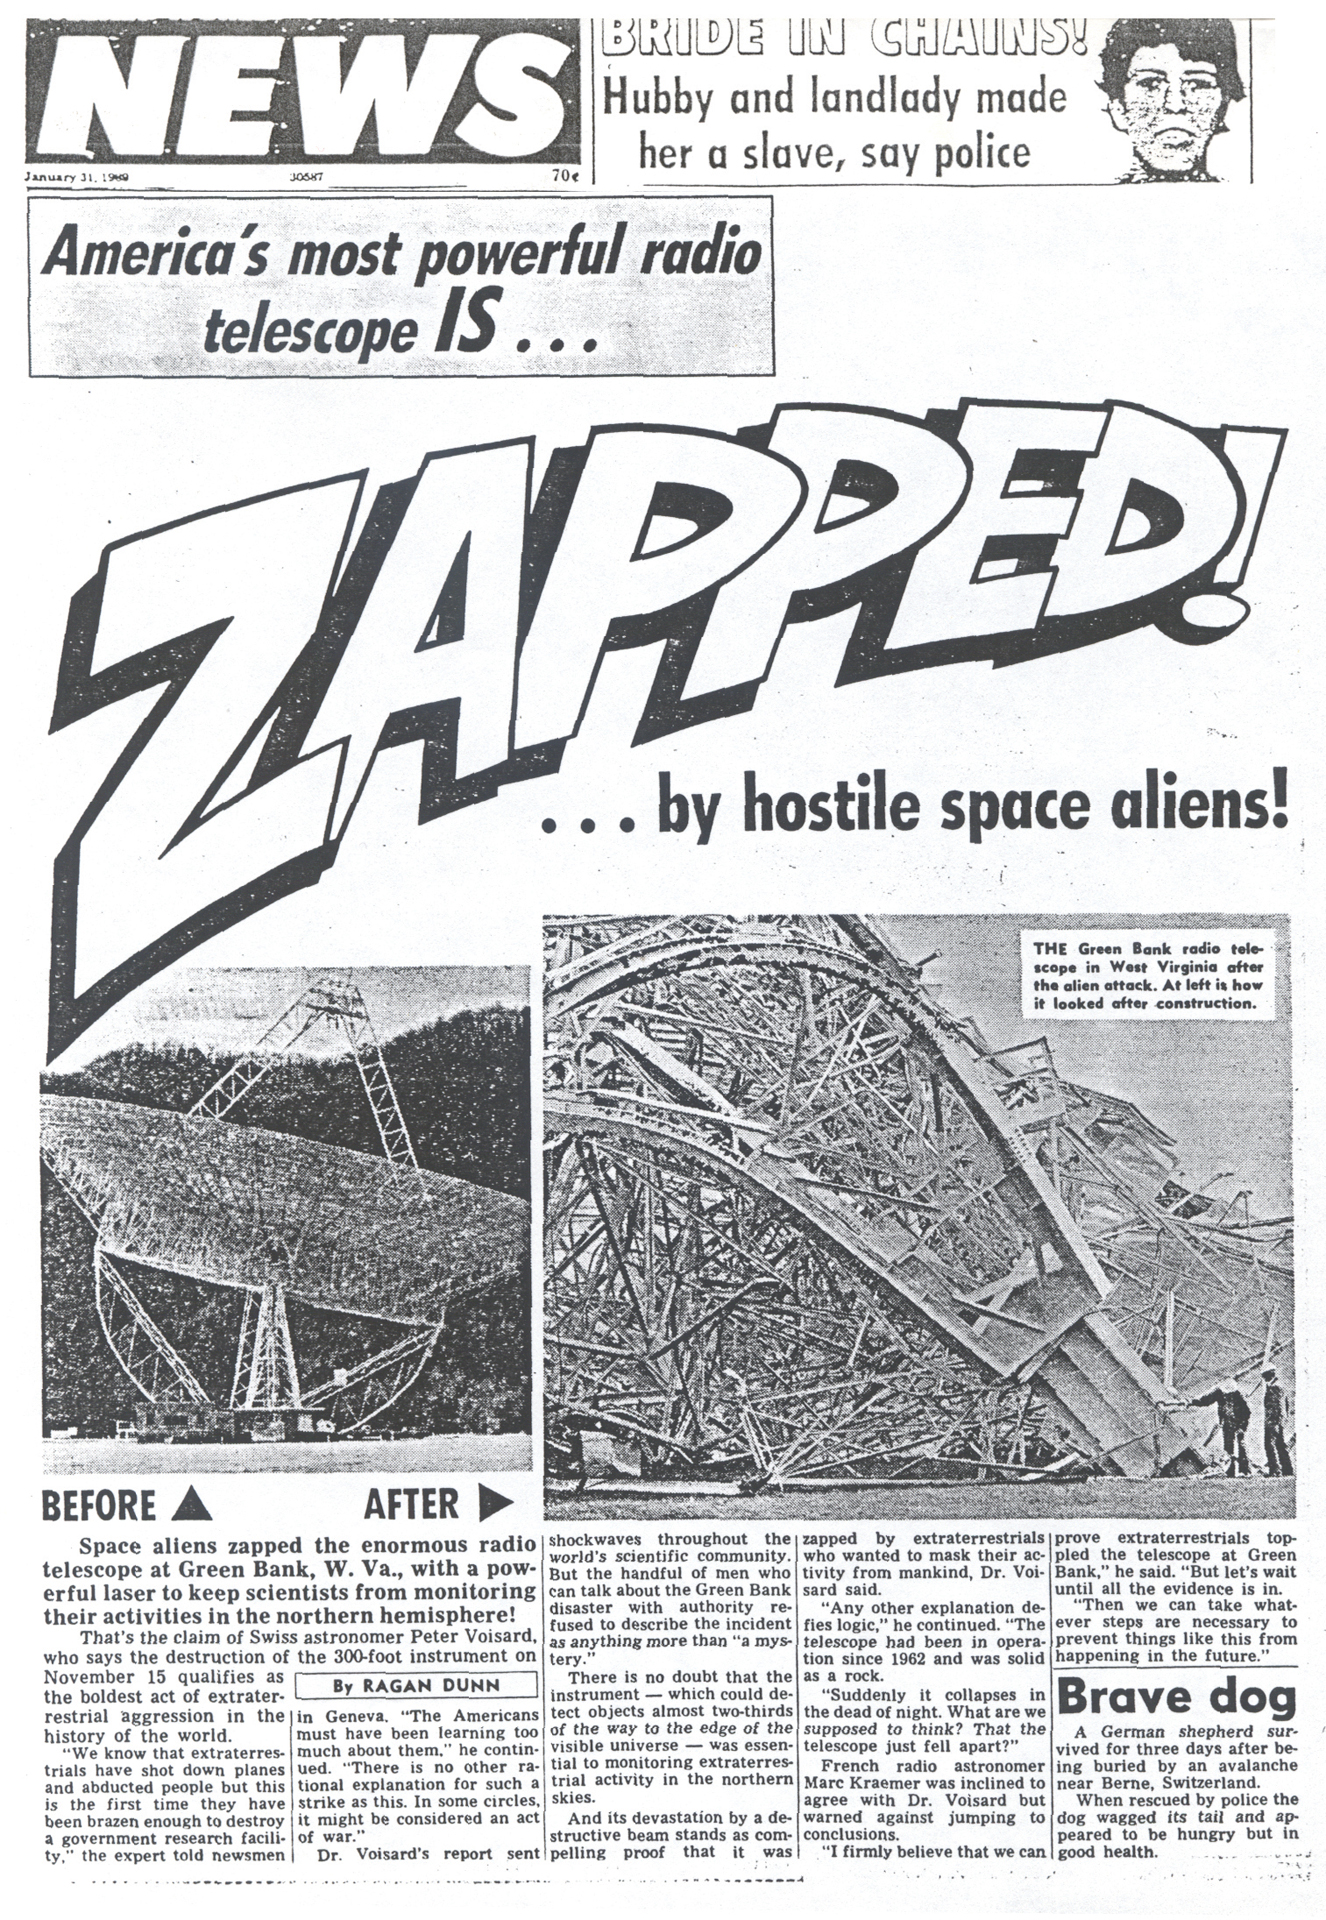 Newspaper article claiming 300-foot telescope was attacked by aliens